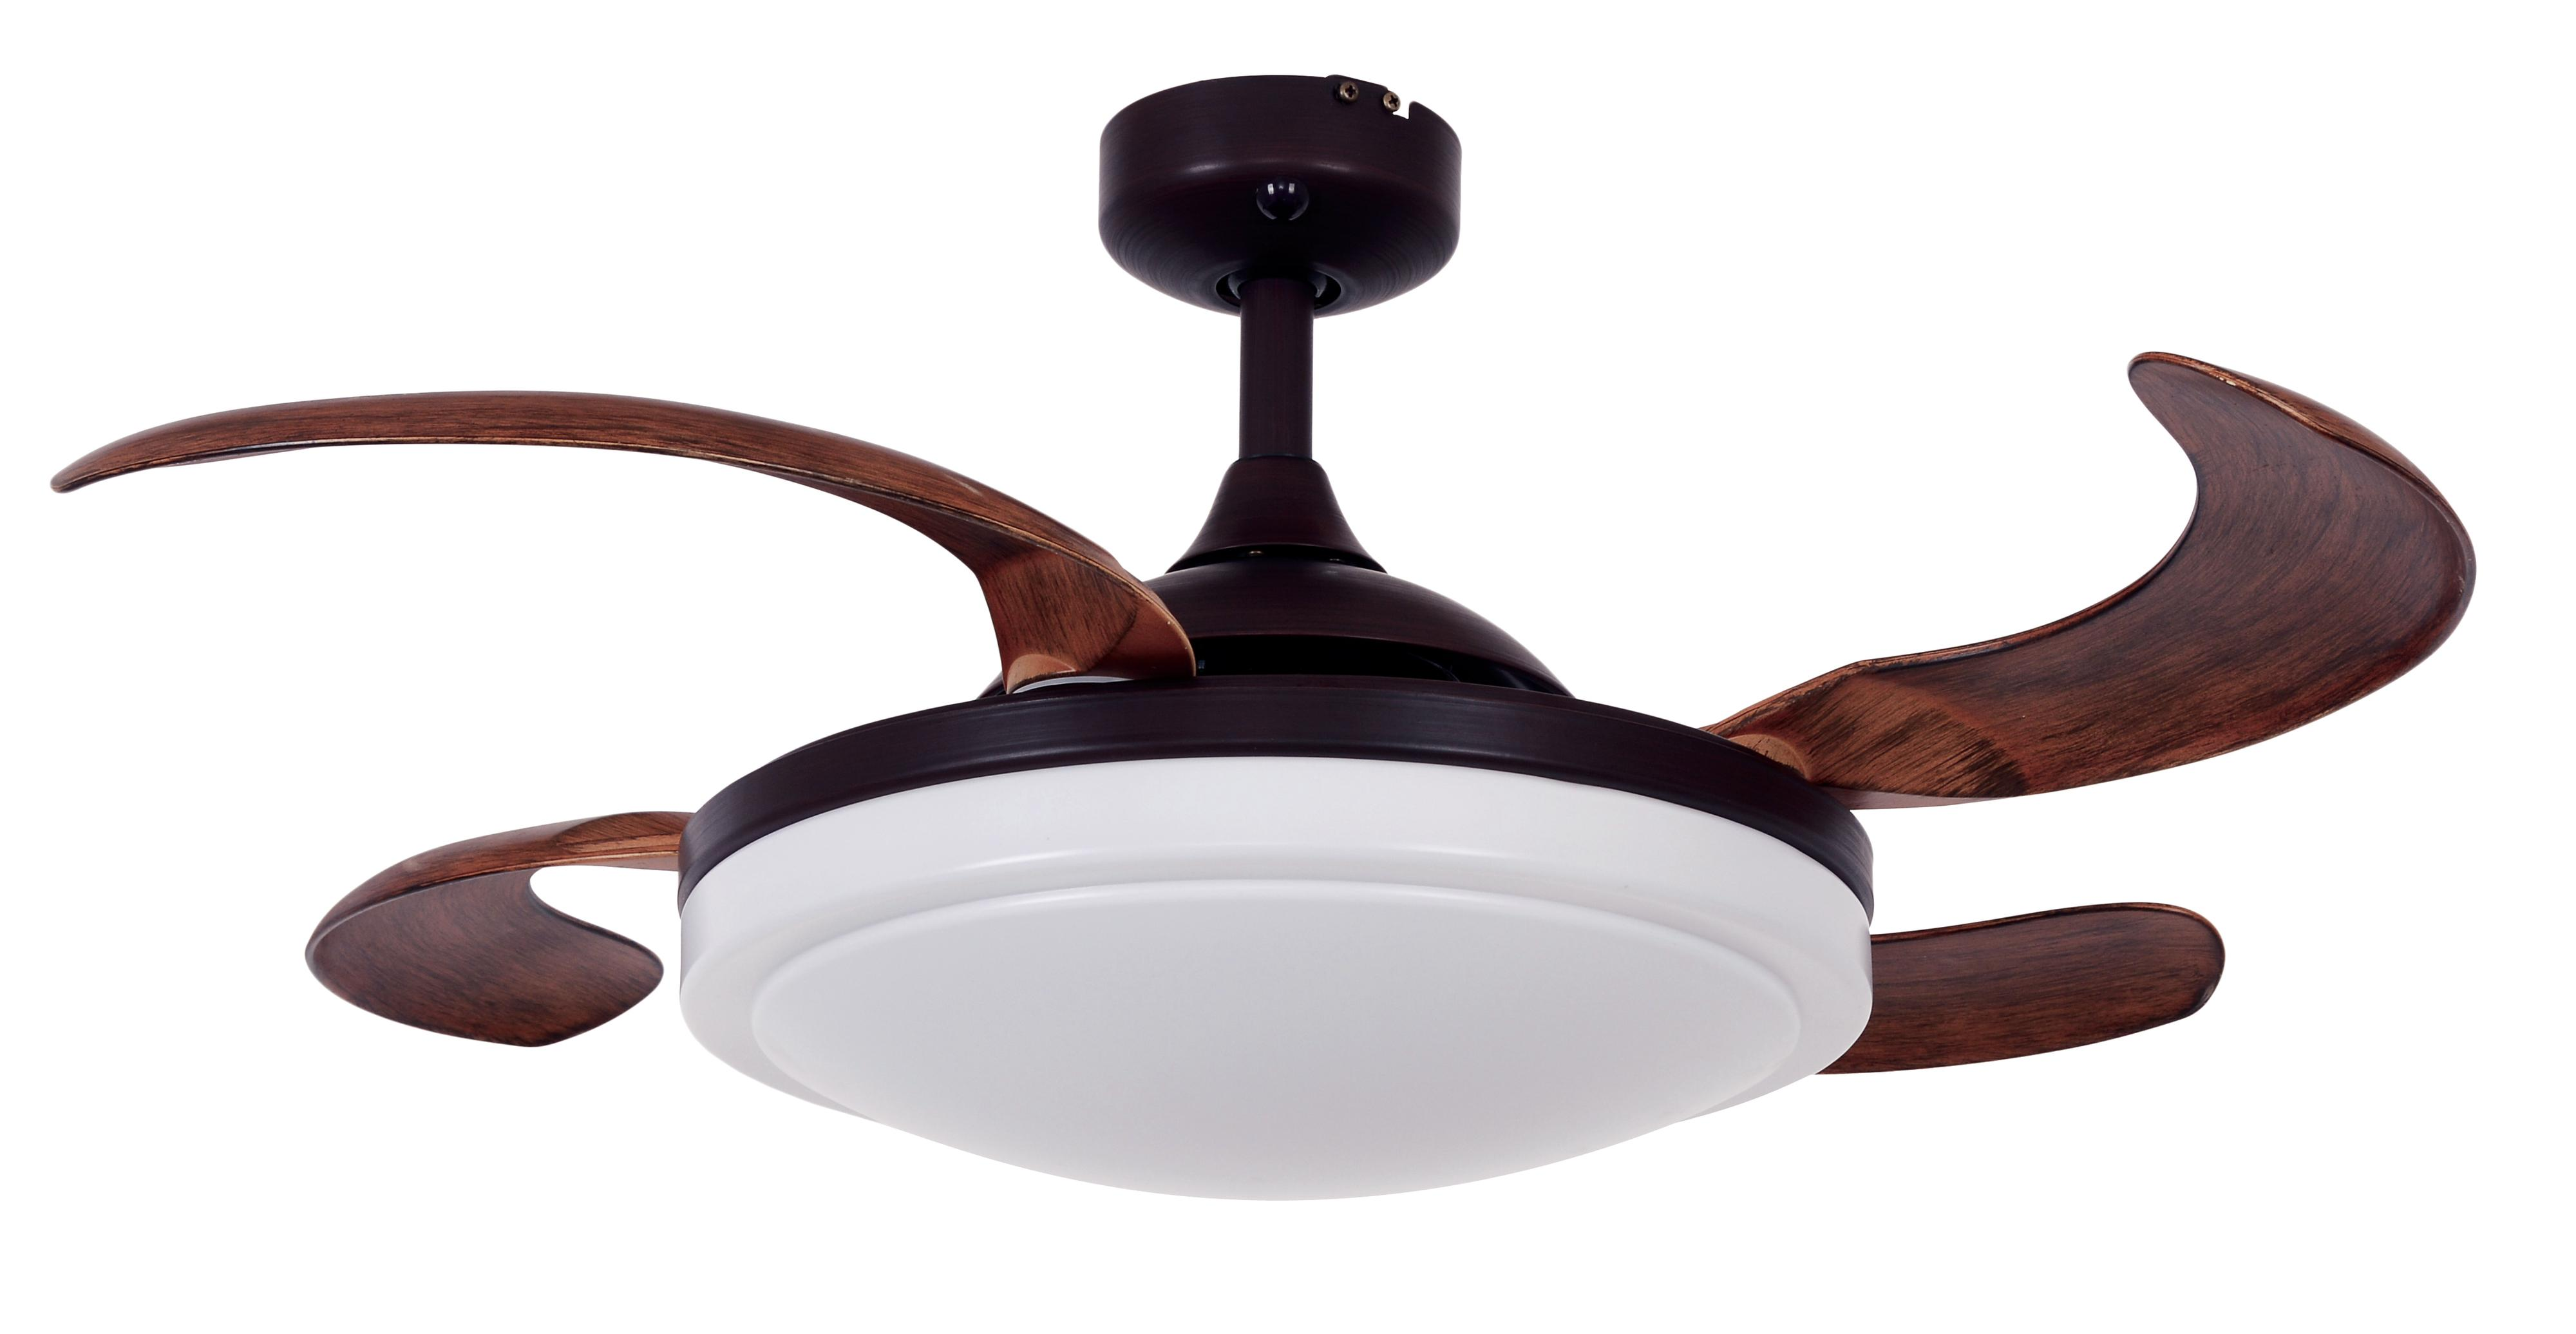 Ceiling Fan Fanaway Evora Bronze With Light And Remote